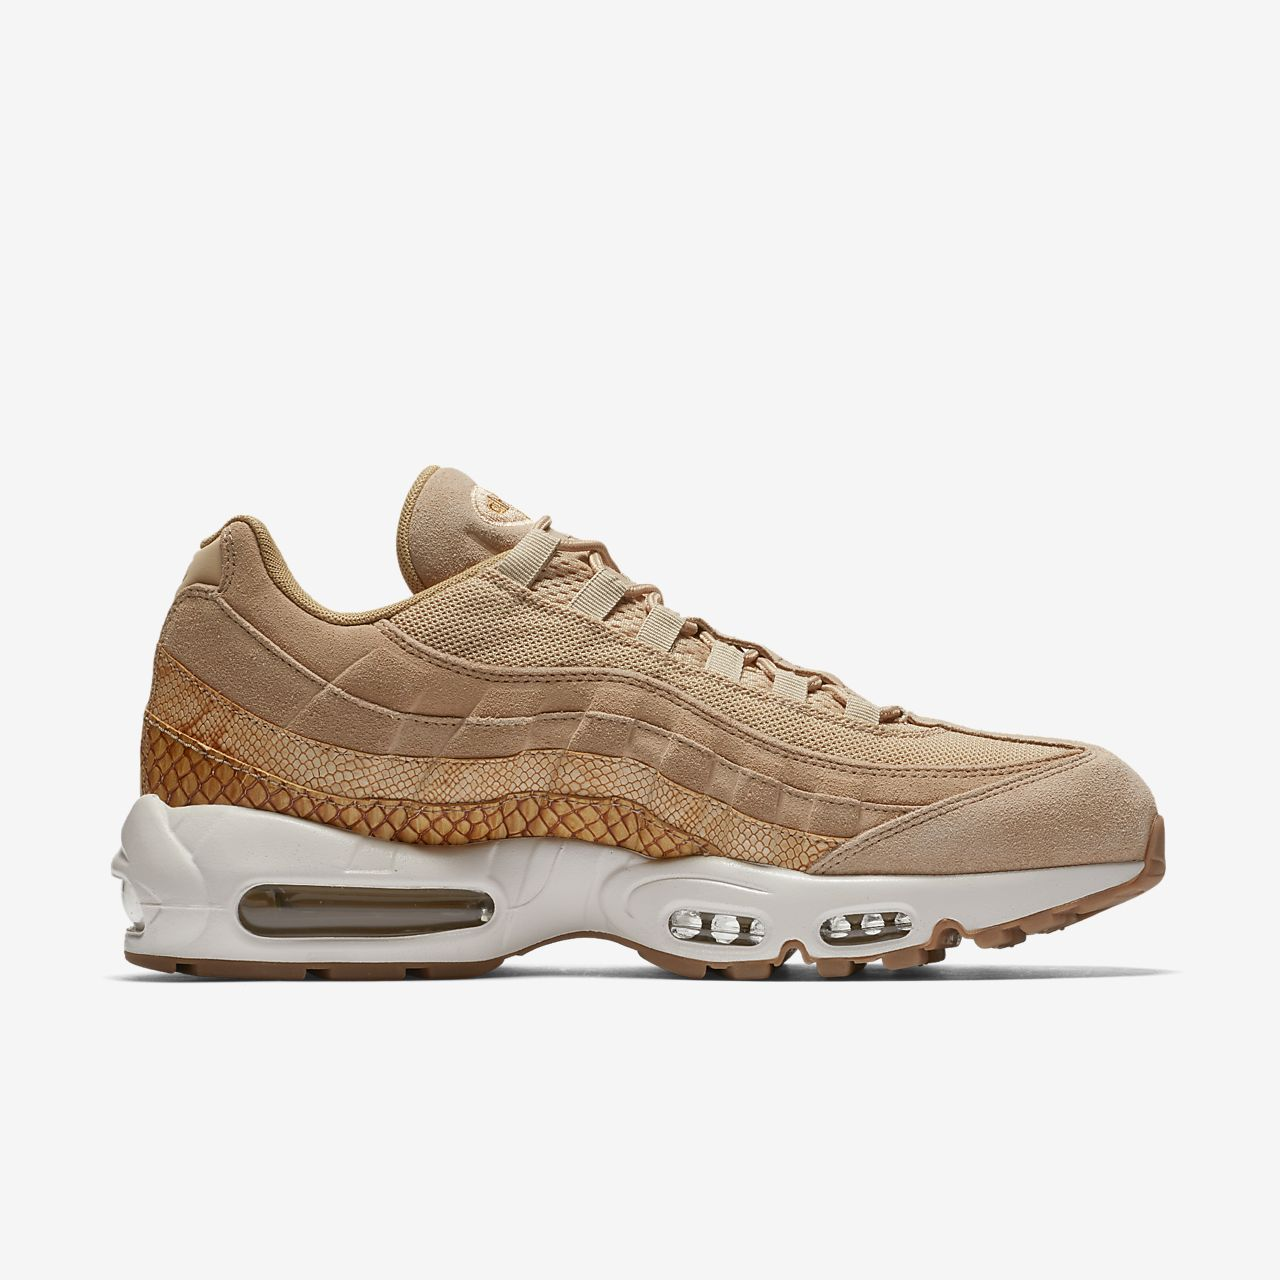 nike air max 95 premium herrenschuh